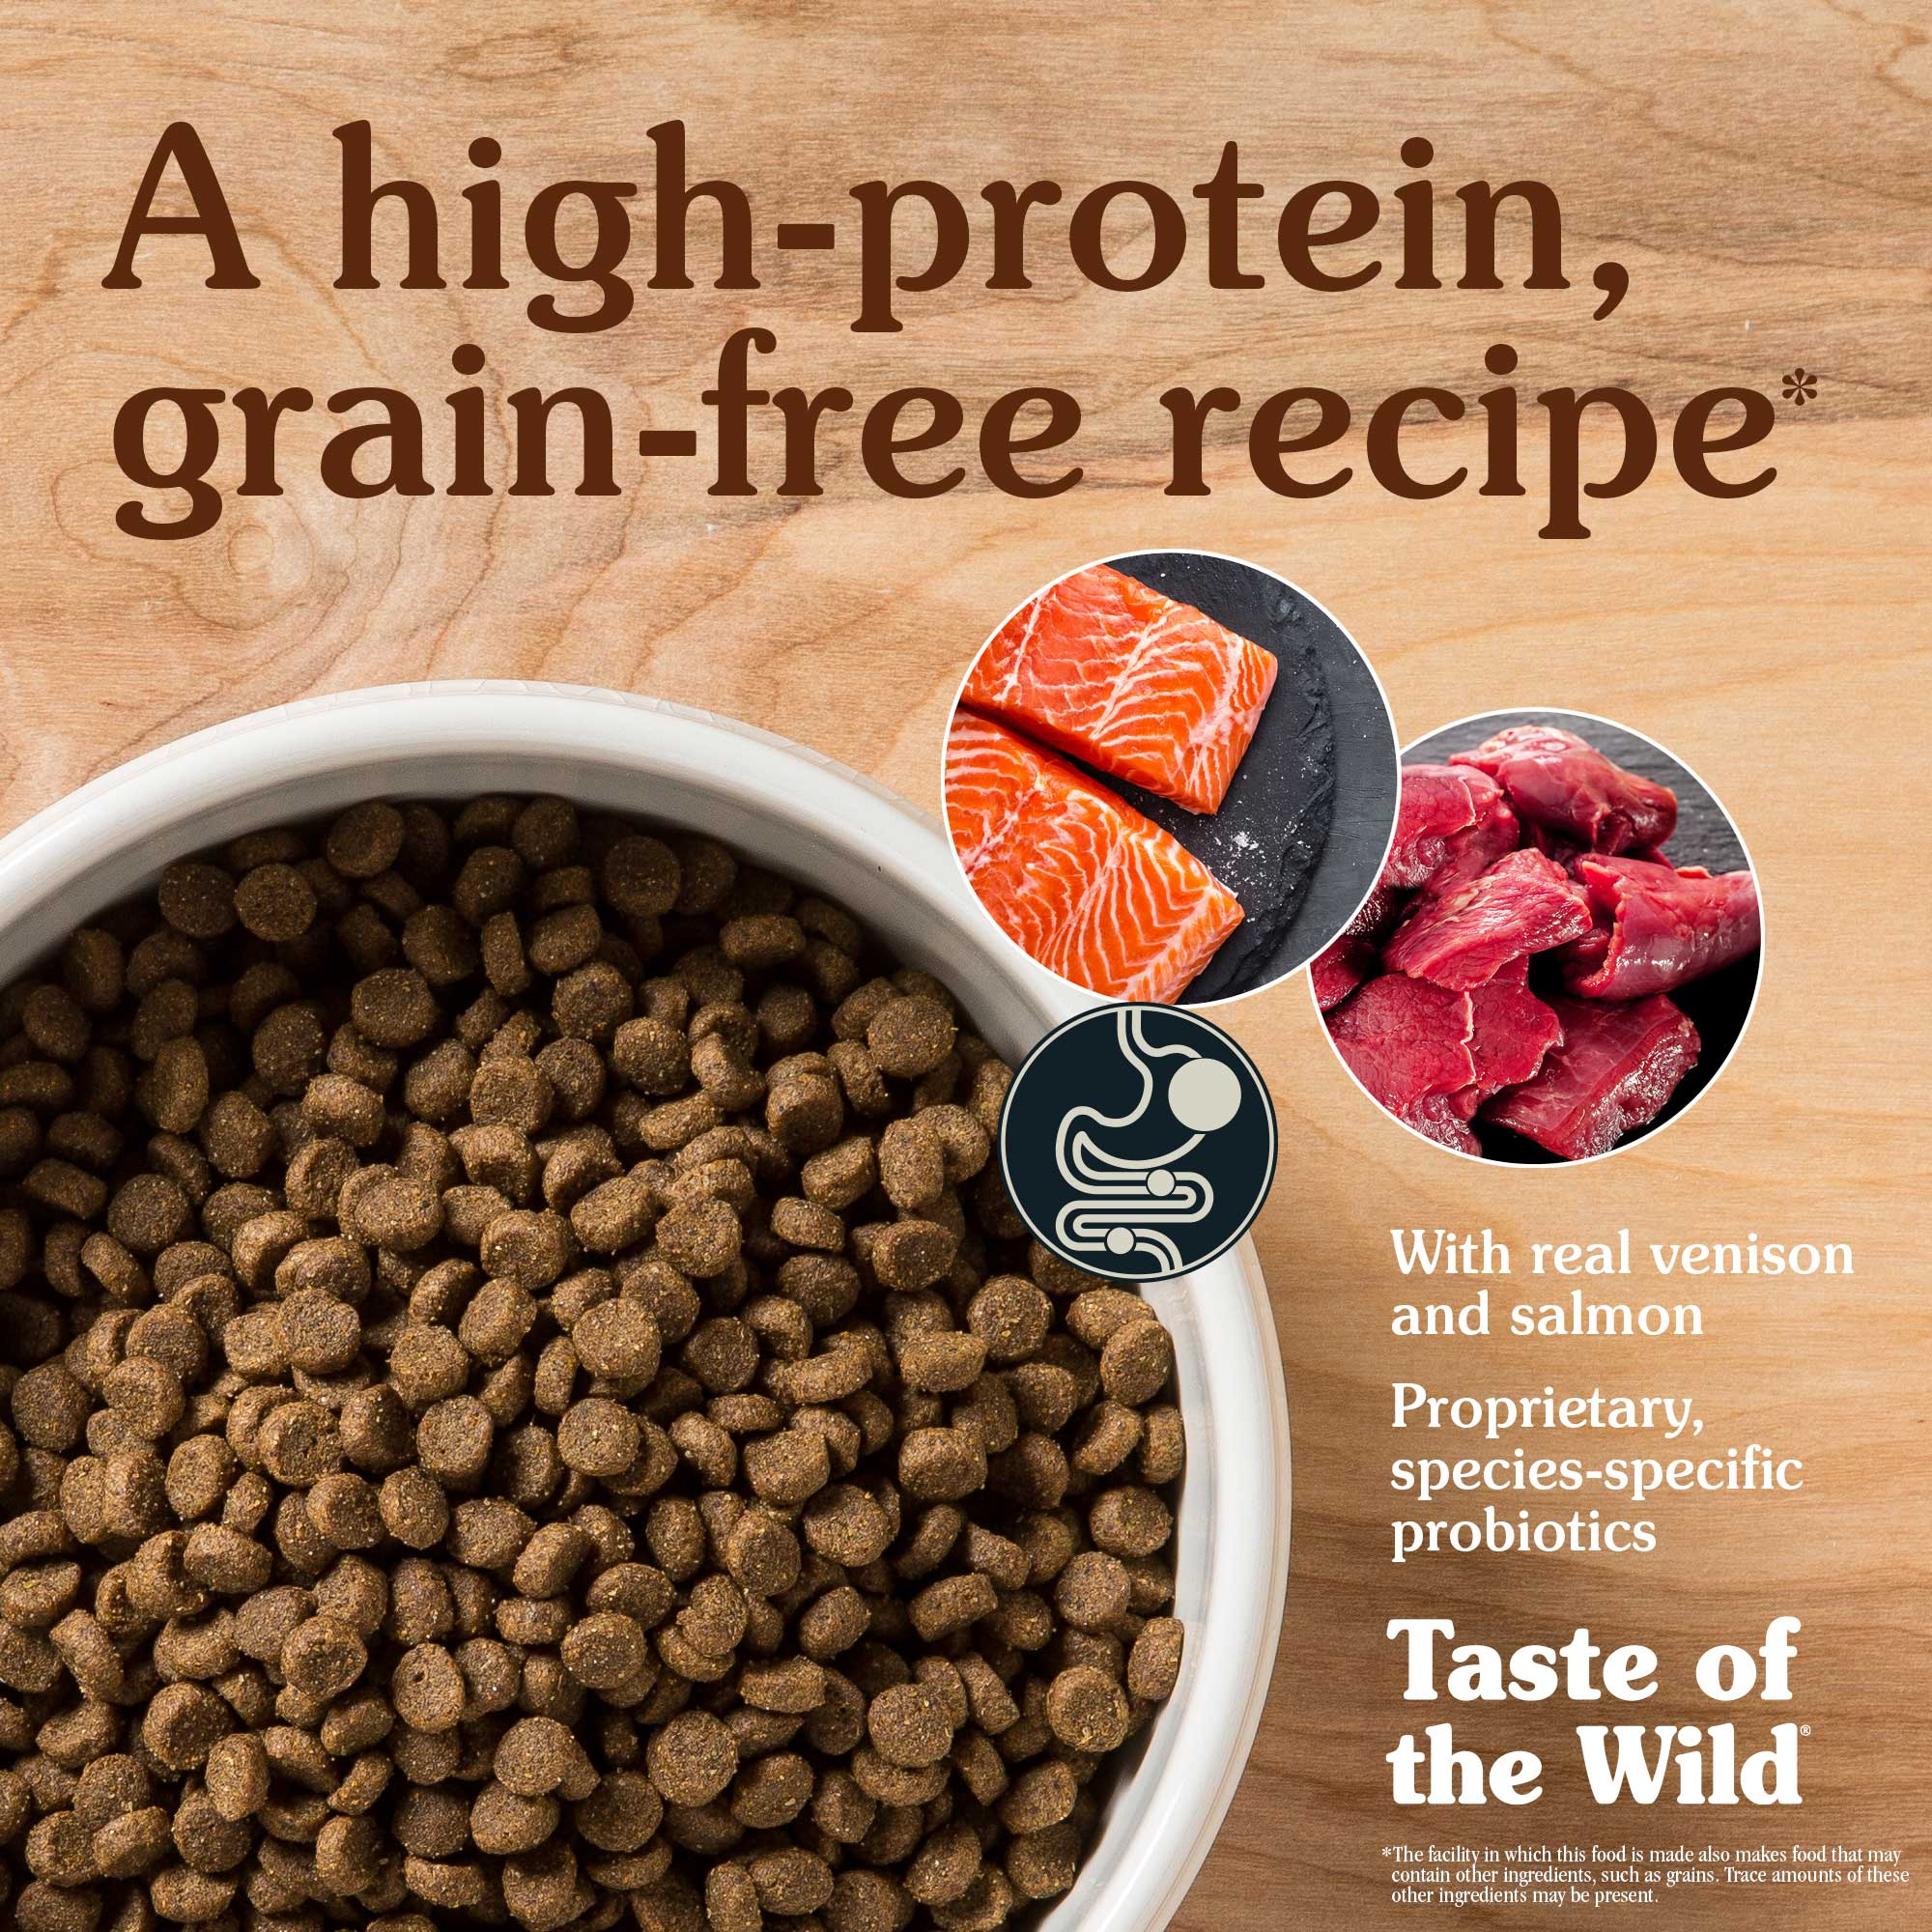 A high-protein, grain-free recipe. With real venison and salmon.